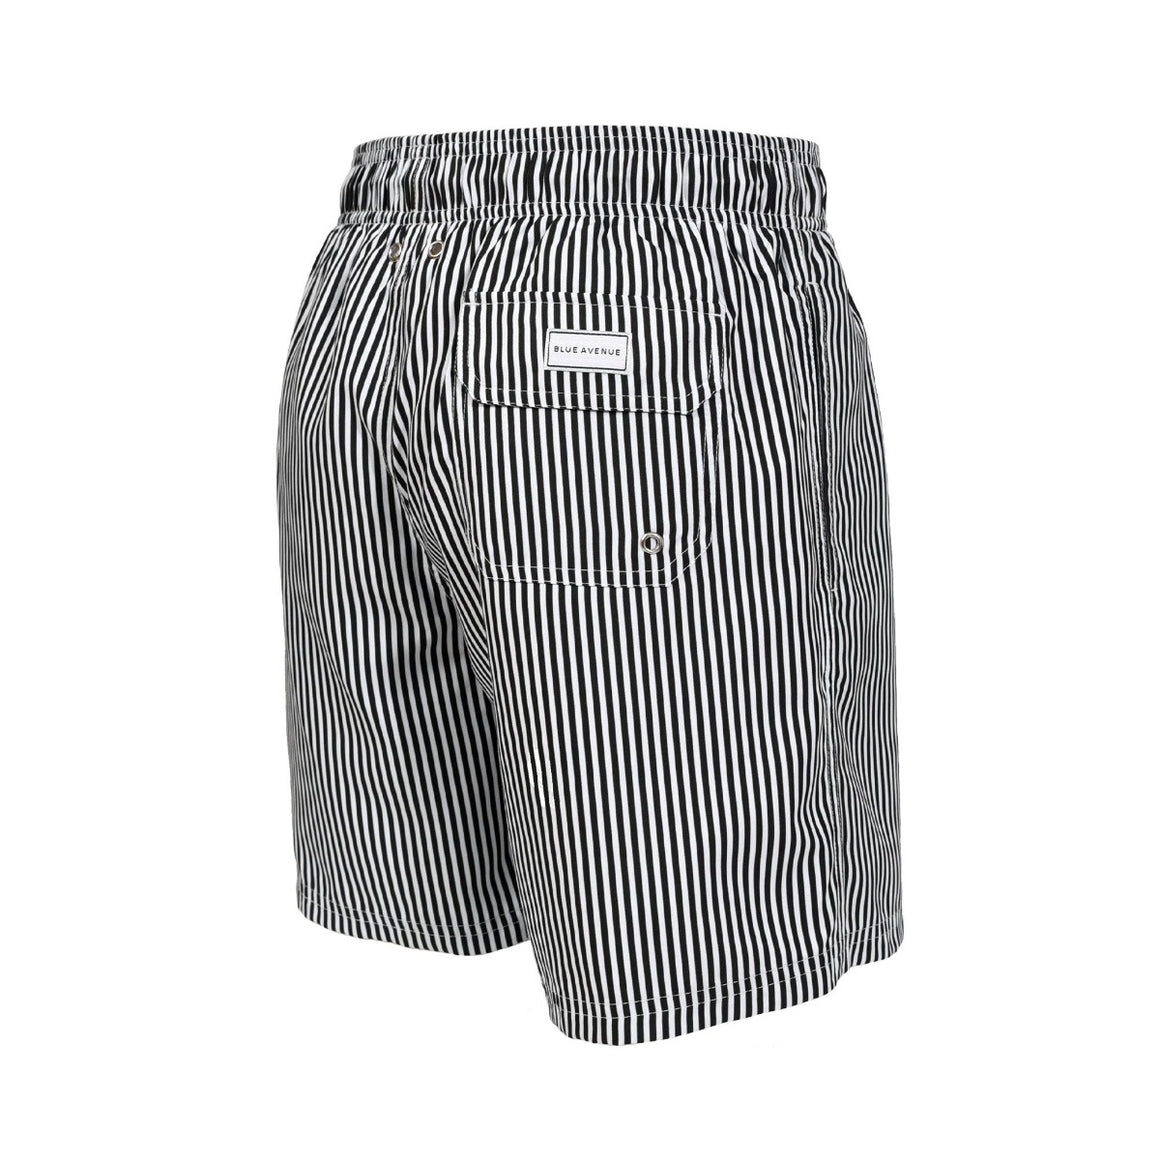 Classic Striped Garrão black and white swim shorts - Blue Avenue